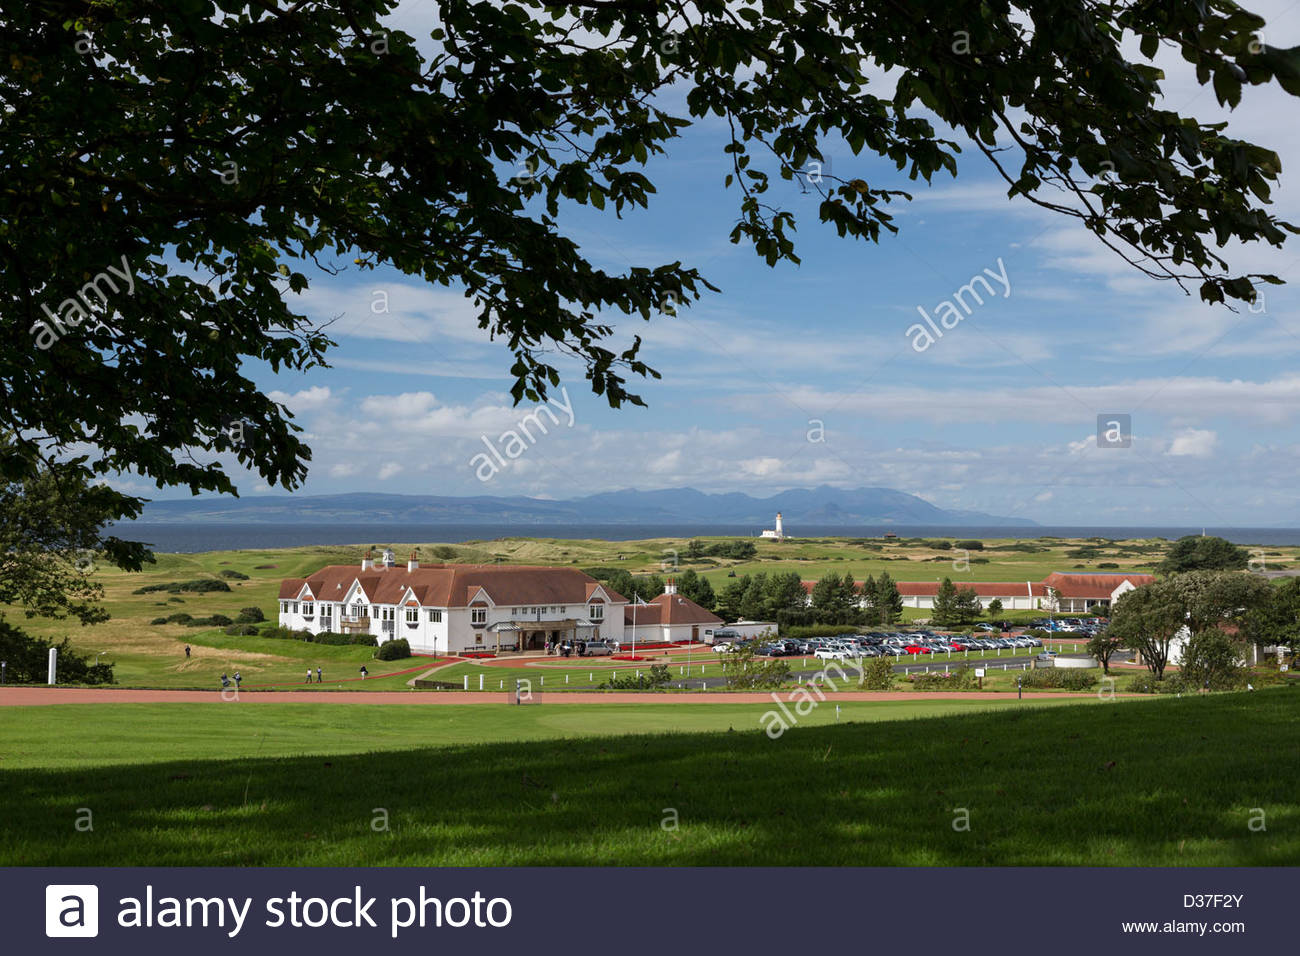 Looking from the Turnberry Hotel and Golf Resort to the Turnberry Clubhouse and Golf Courses. - Stock Image